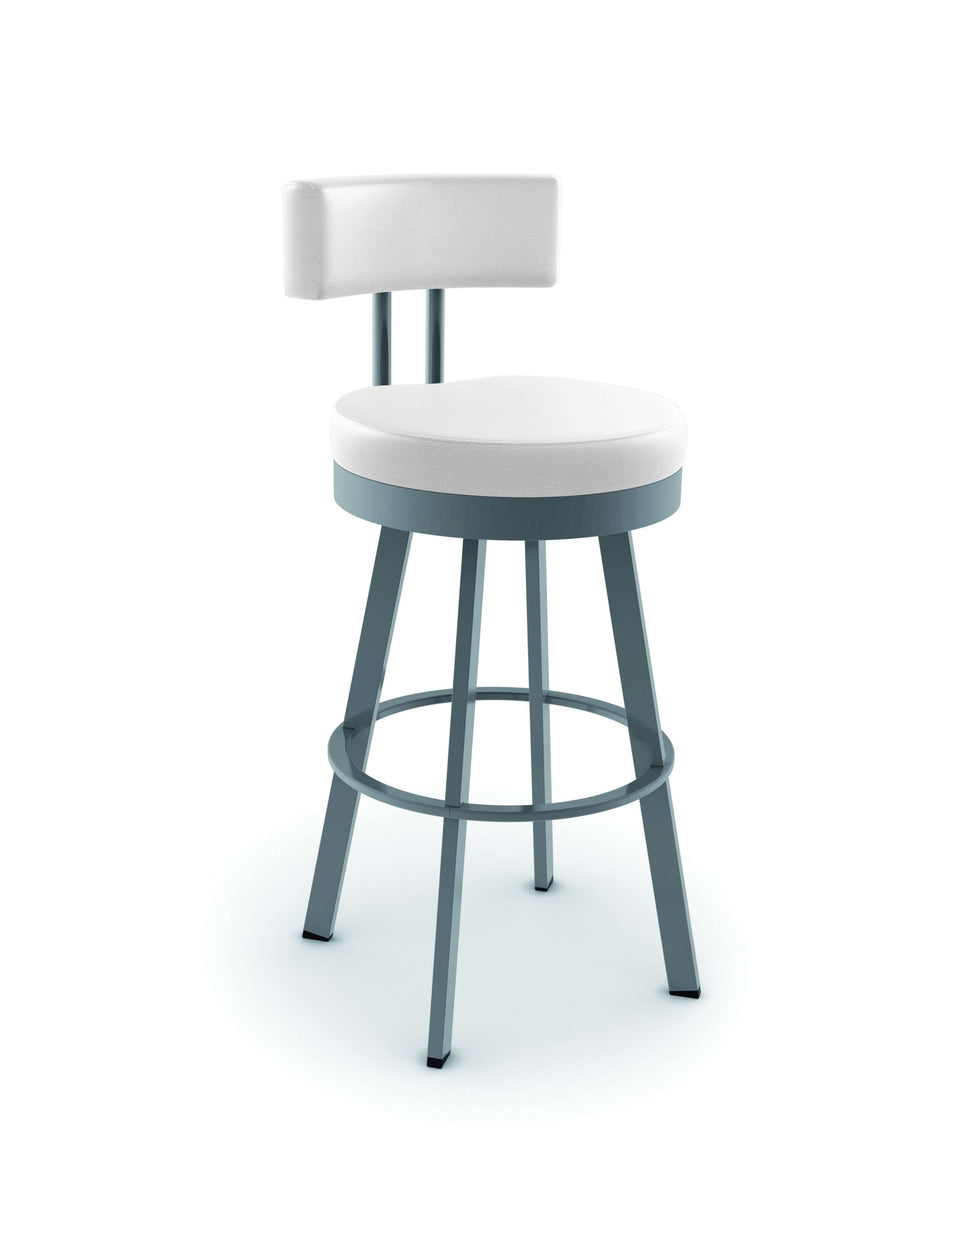 Amisco Barry Swivel Spectator Stool with Upholstered Seat and Backrest